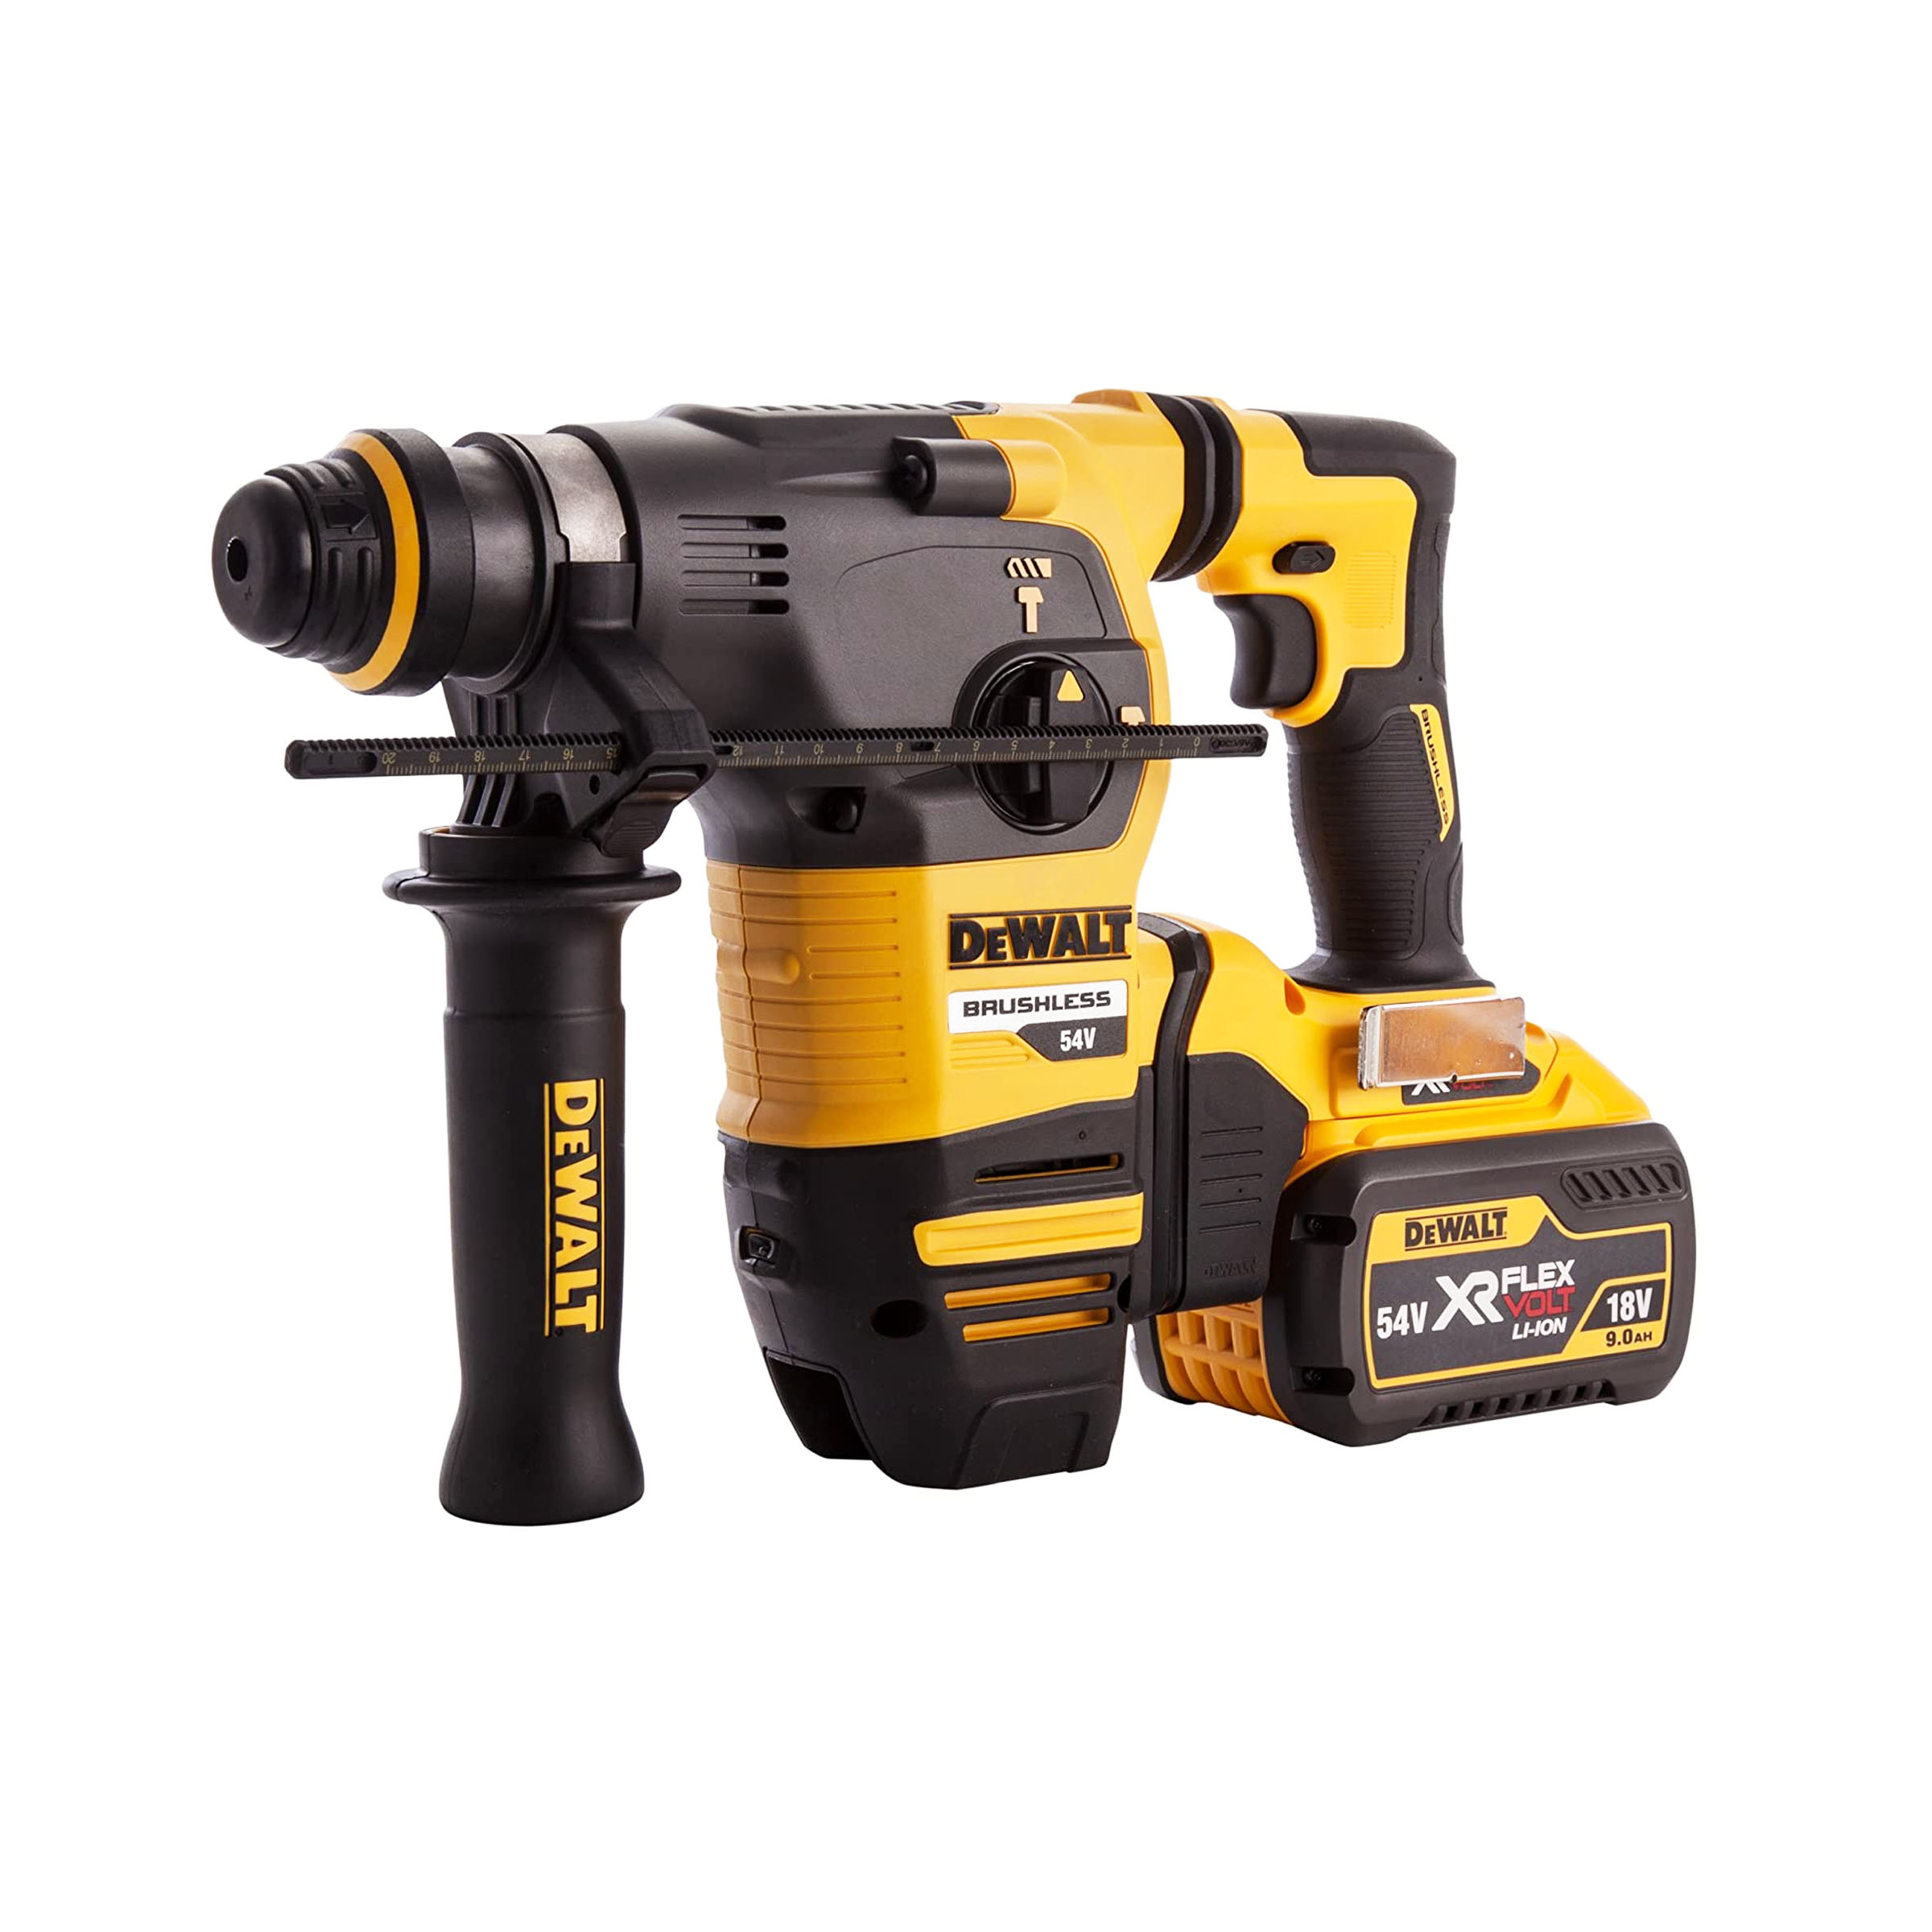 toptopdeal-Dewalt DCH333X2-GB TL19788 Flex Volt SDS Brushless 3 Mode Rotary Hammer in TSTAK Box 54 V Yellow Black 355 mm 14-Inch Set of 7 Pieces